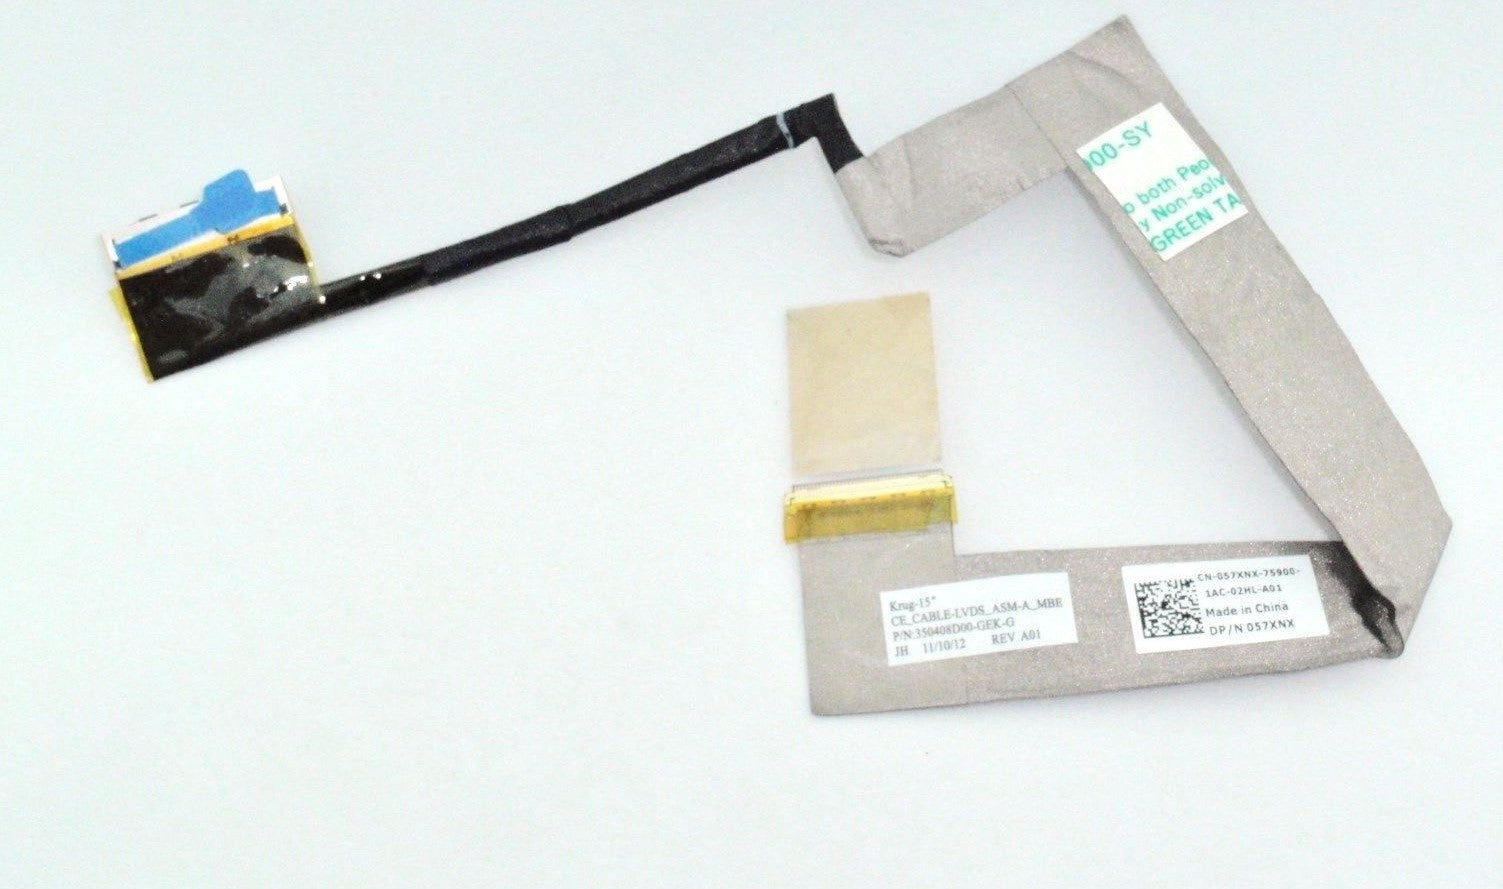 New Dell Latitude E5520 E6520 LCD Cable 350404C00-600-G 350408D00-GEK-G 57XNX 057XNX